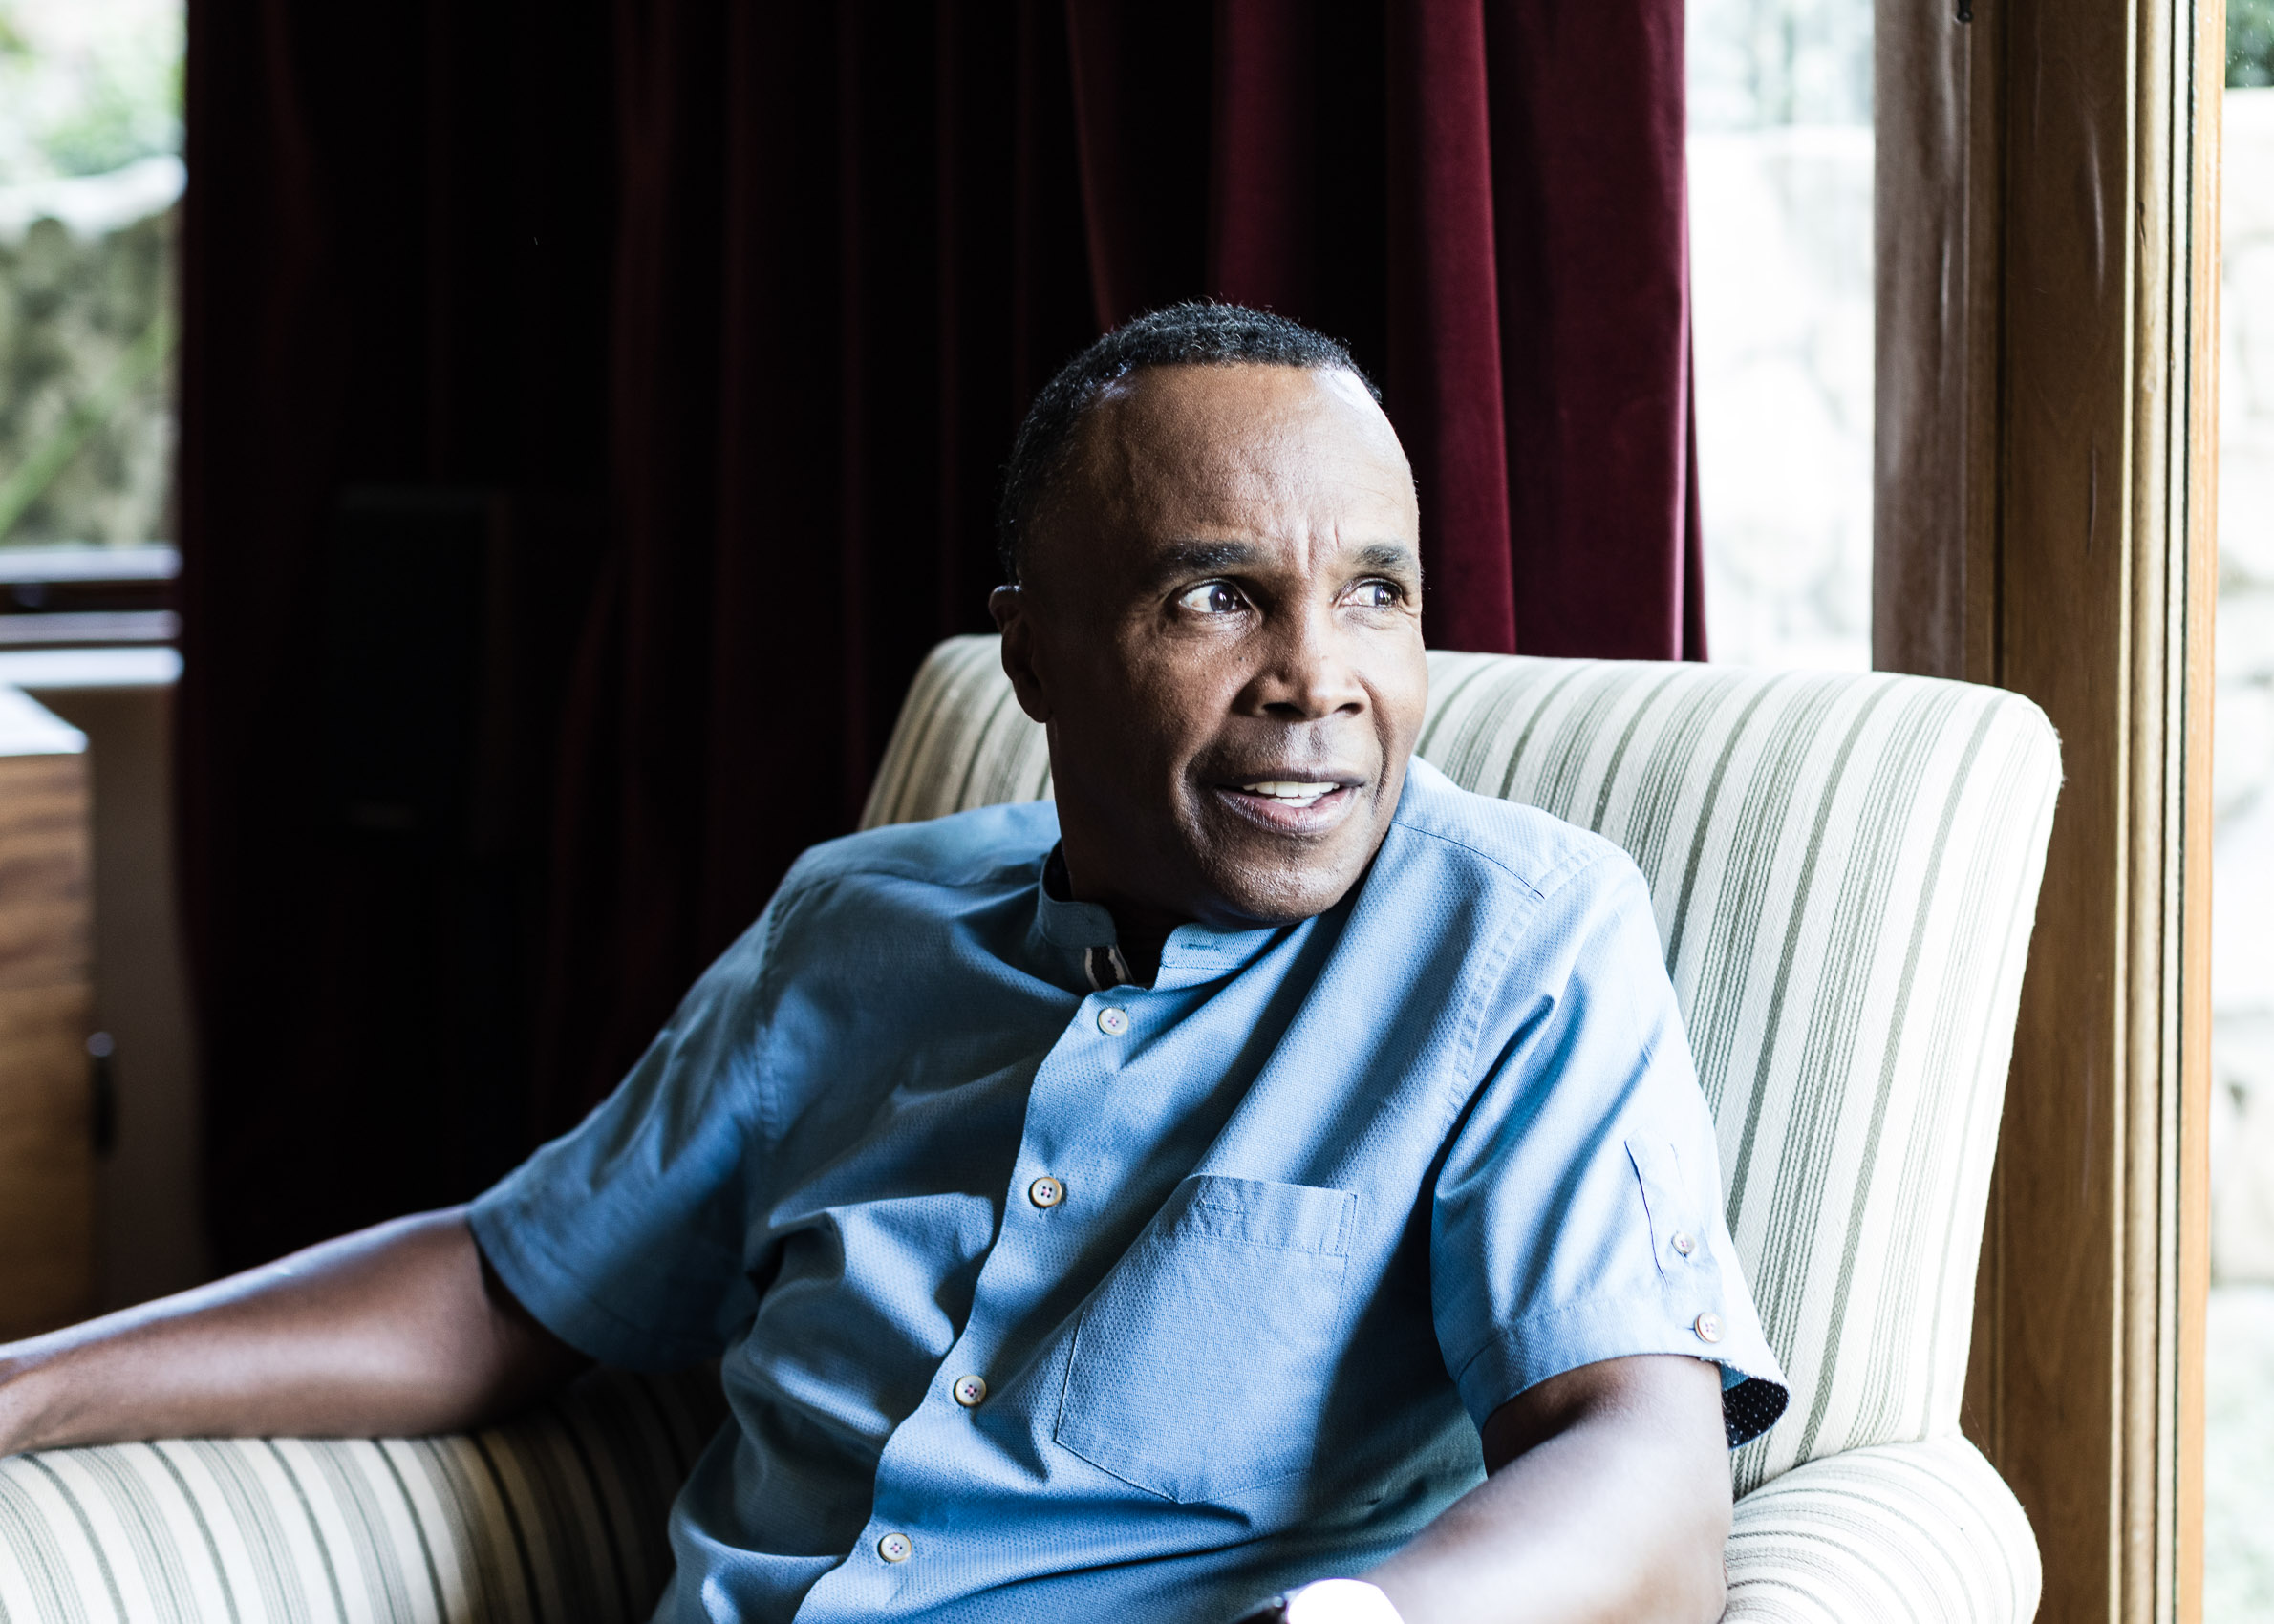 PATRICK STRATTNER PHOTOGRAPHY | Sugar Ray Leonard / WSJ